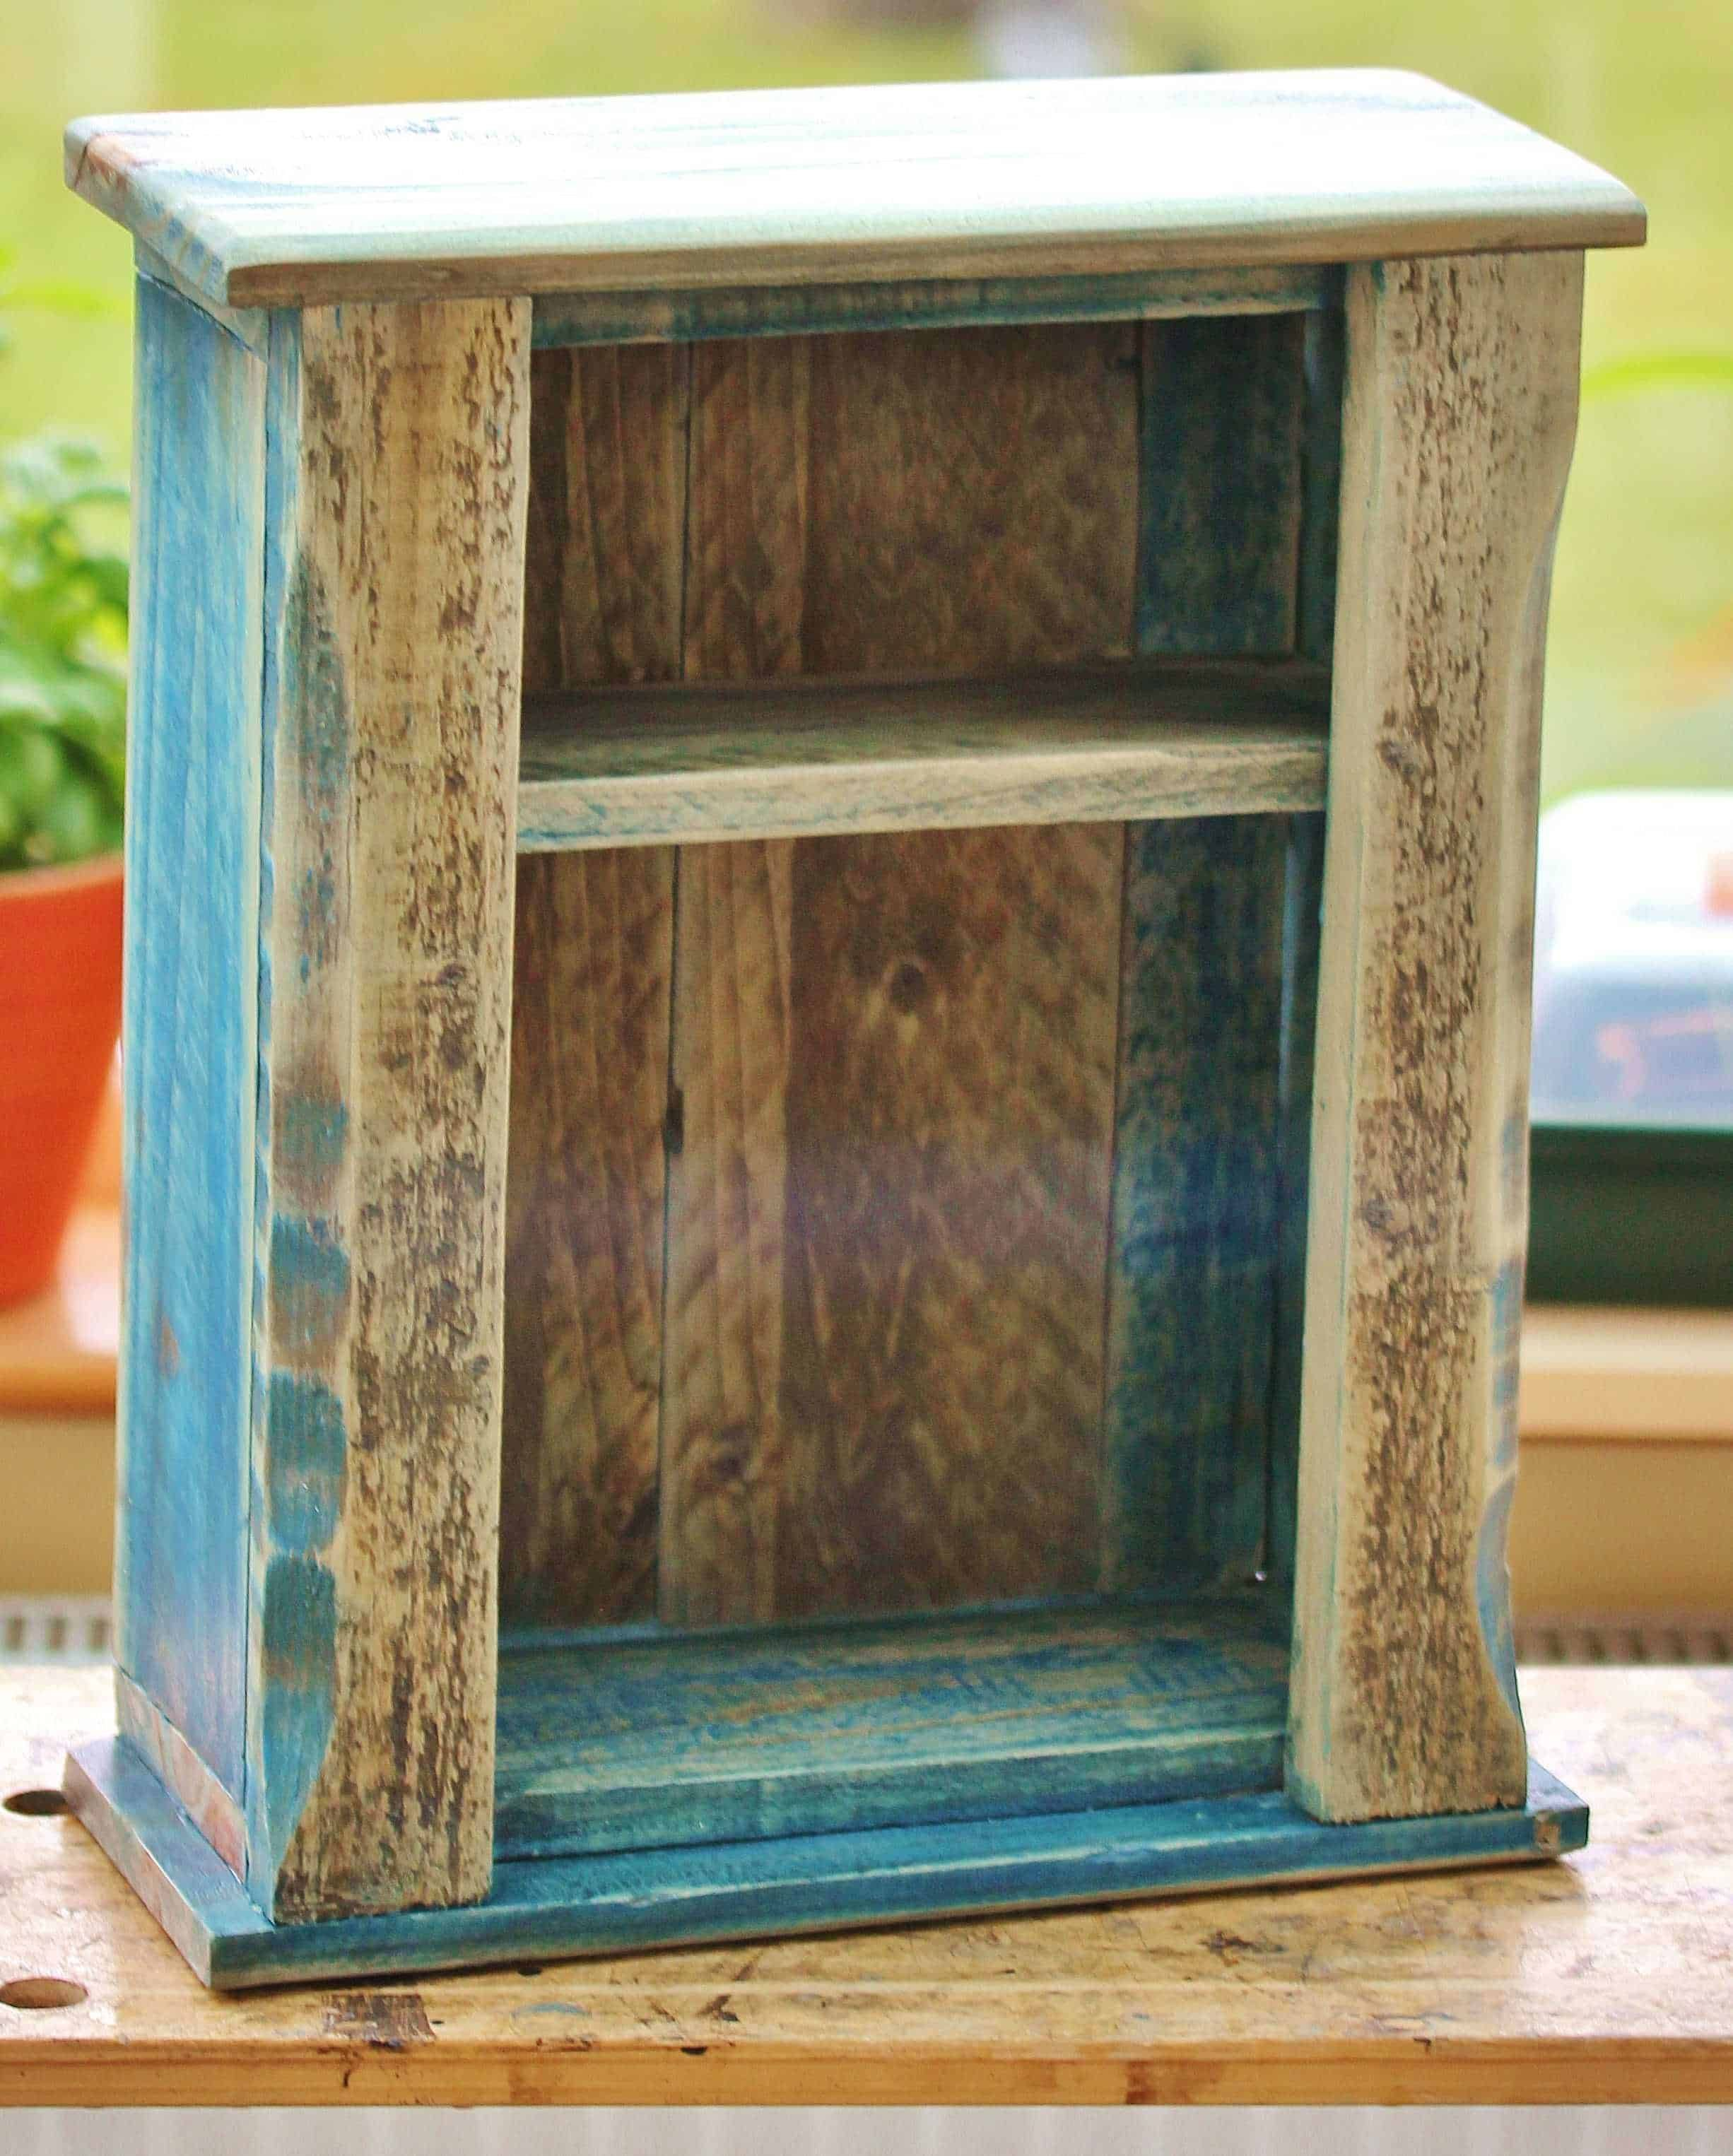 Pallet Wall Shelves 1001 Pallets Pallet Home Decor Wood Pallet Projects Wood Pallets